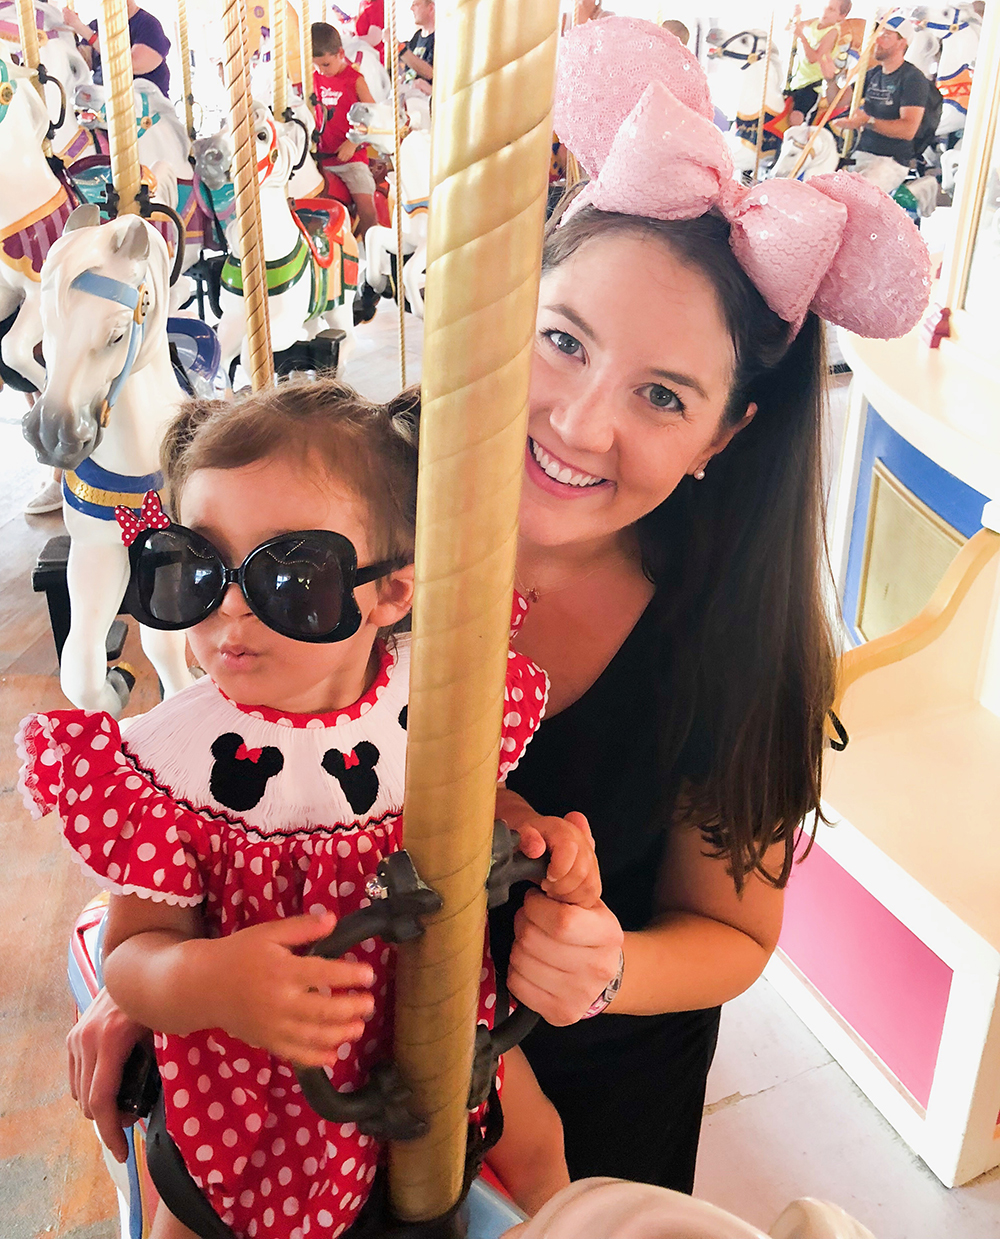 How to Have a Magical Day at Disney